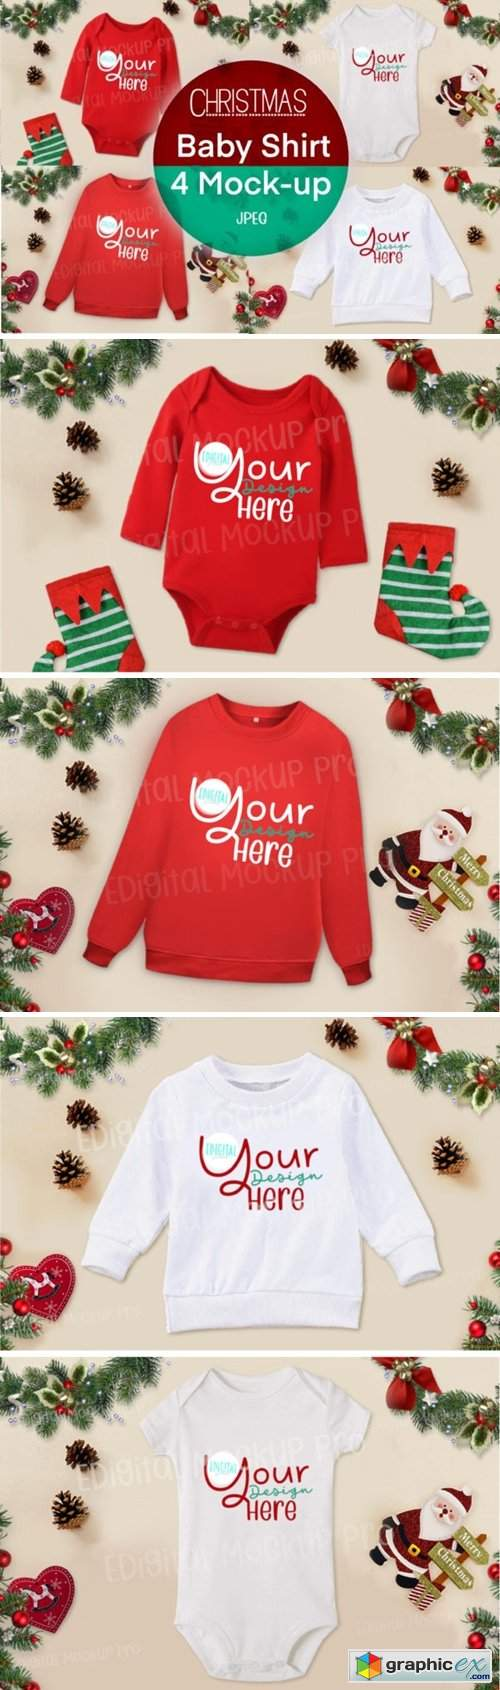 4 Christmas RED WHITE Baby Shirt Mock Up